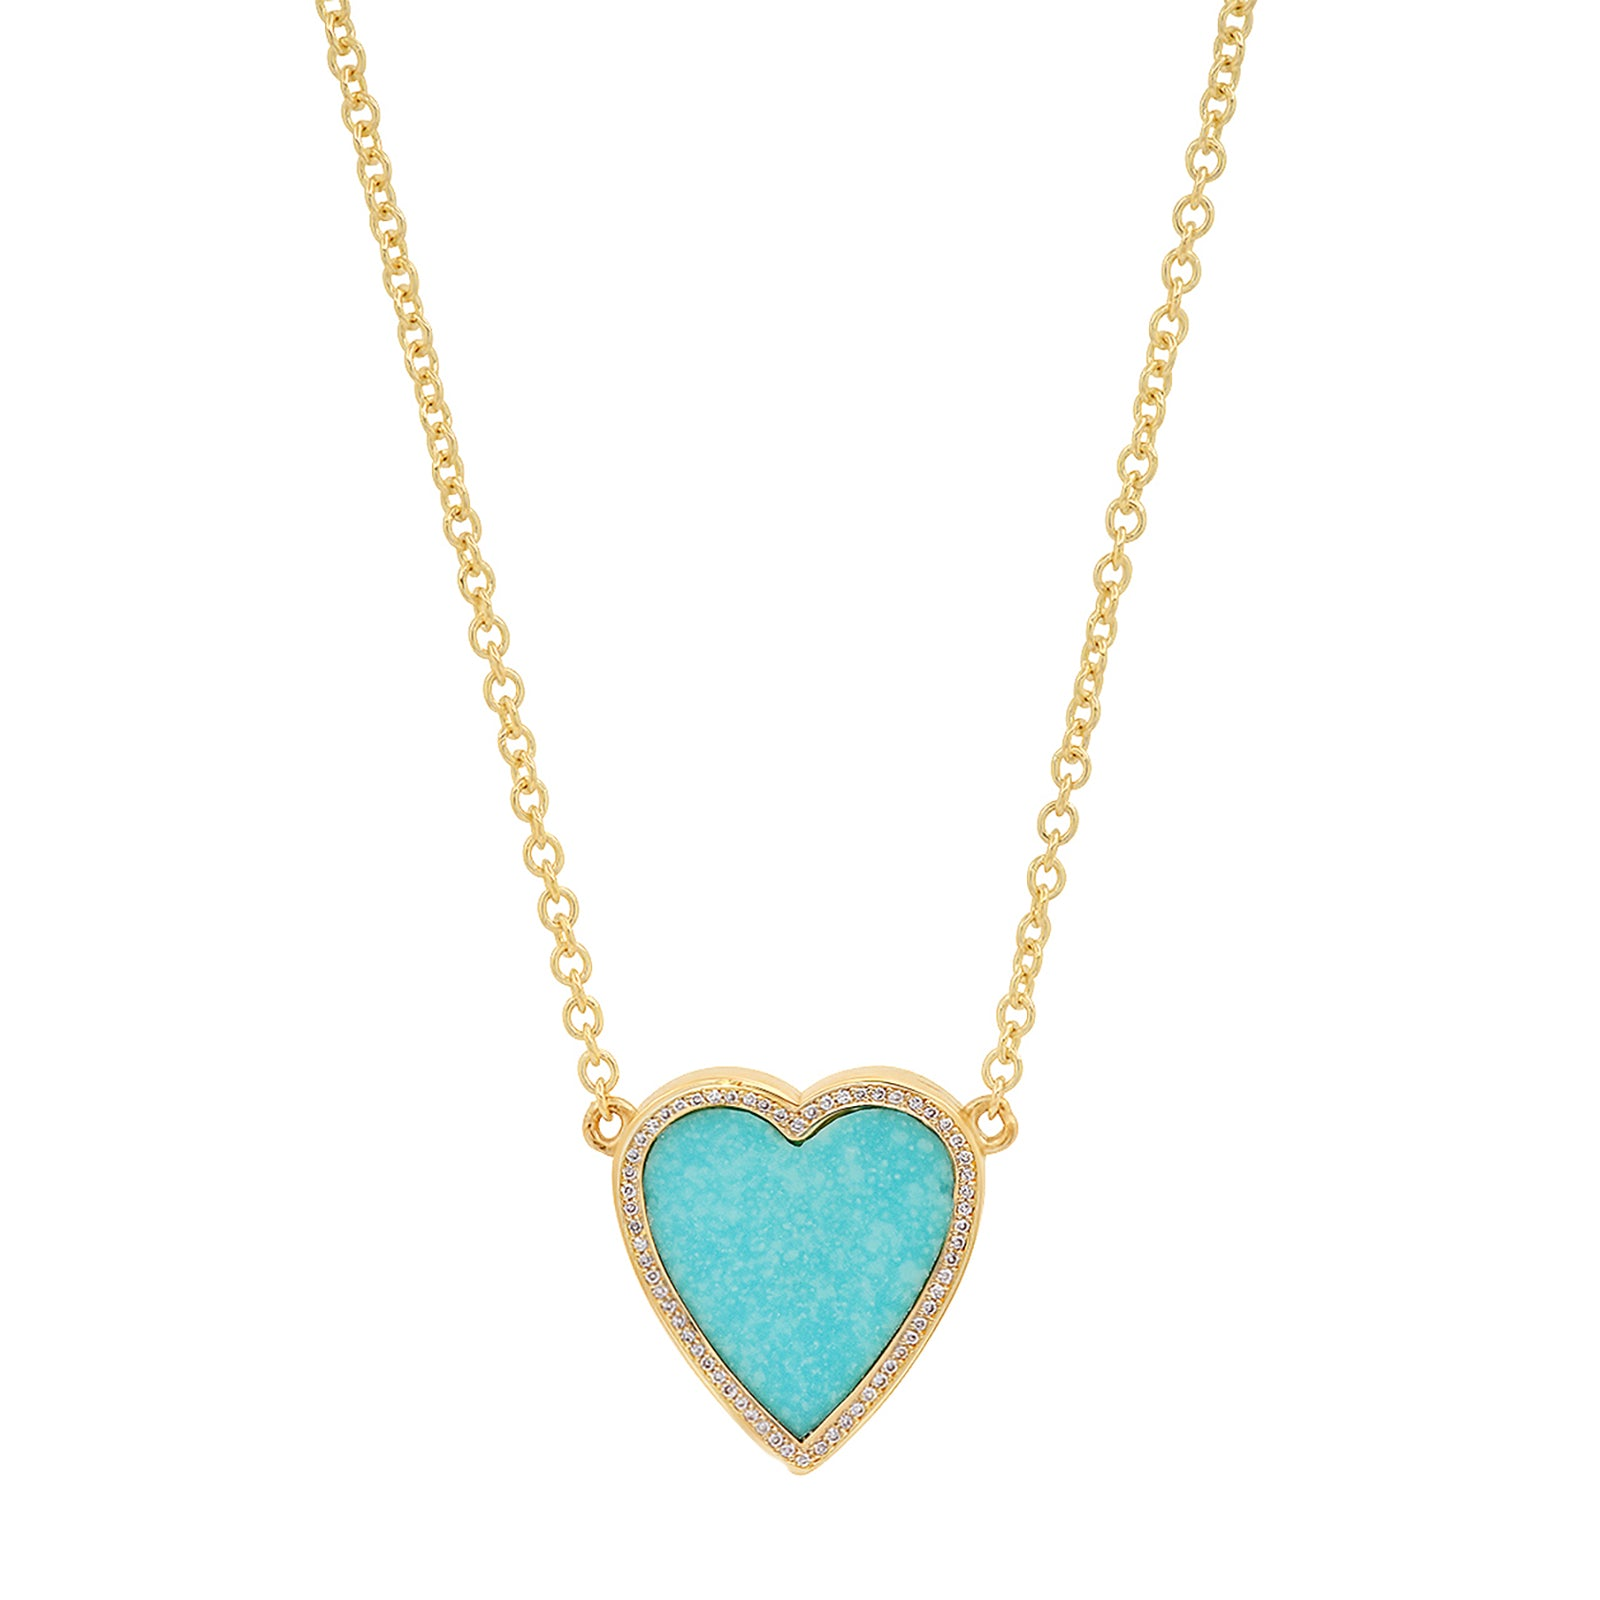 Jennifer Meyer Heart Pendant Necklace - Turquoise - Necklaces - Broken English Jewelry